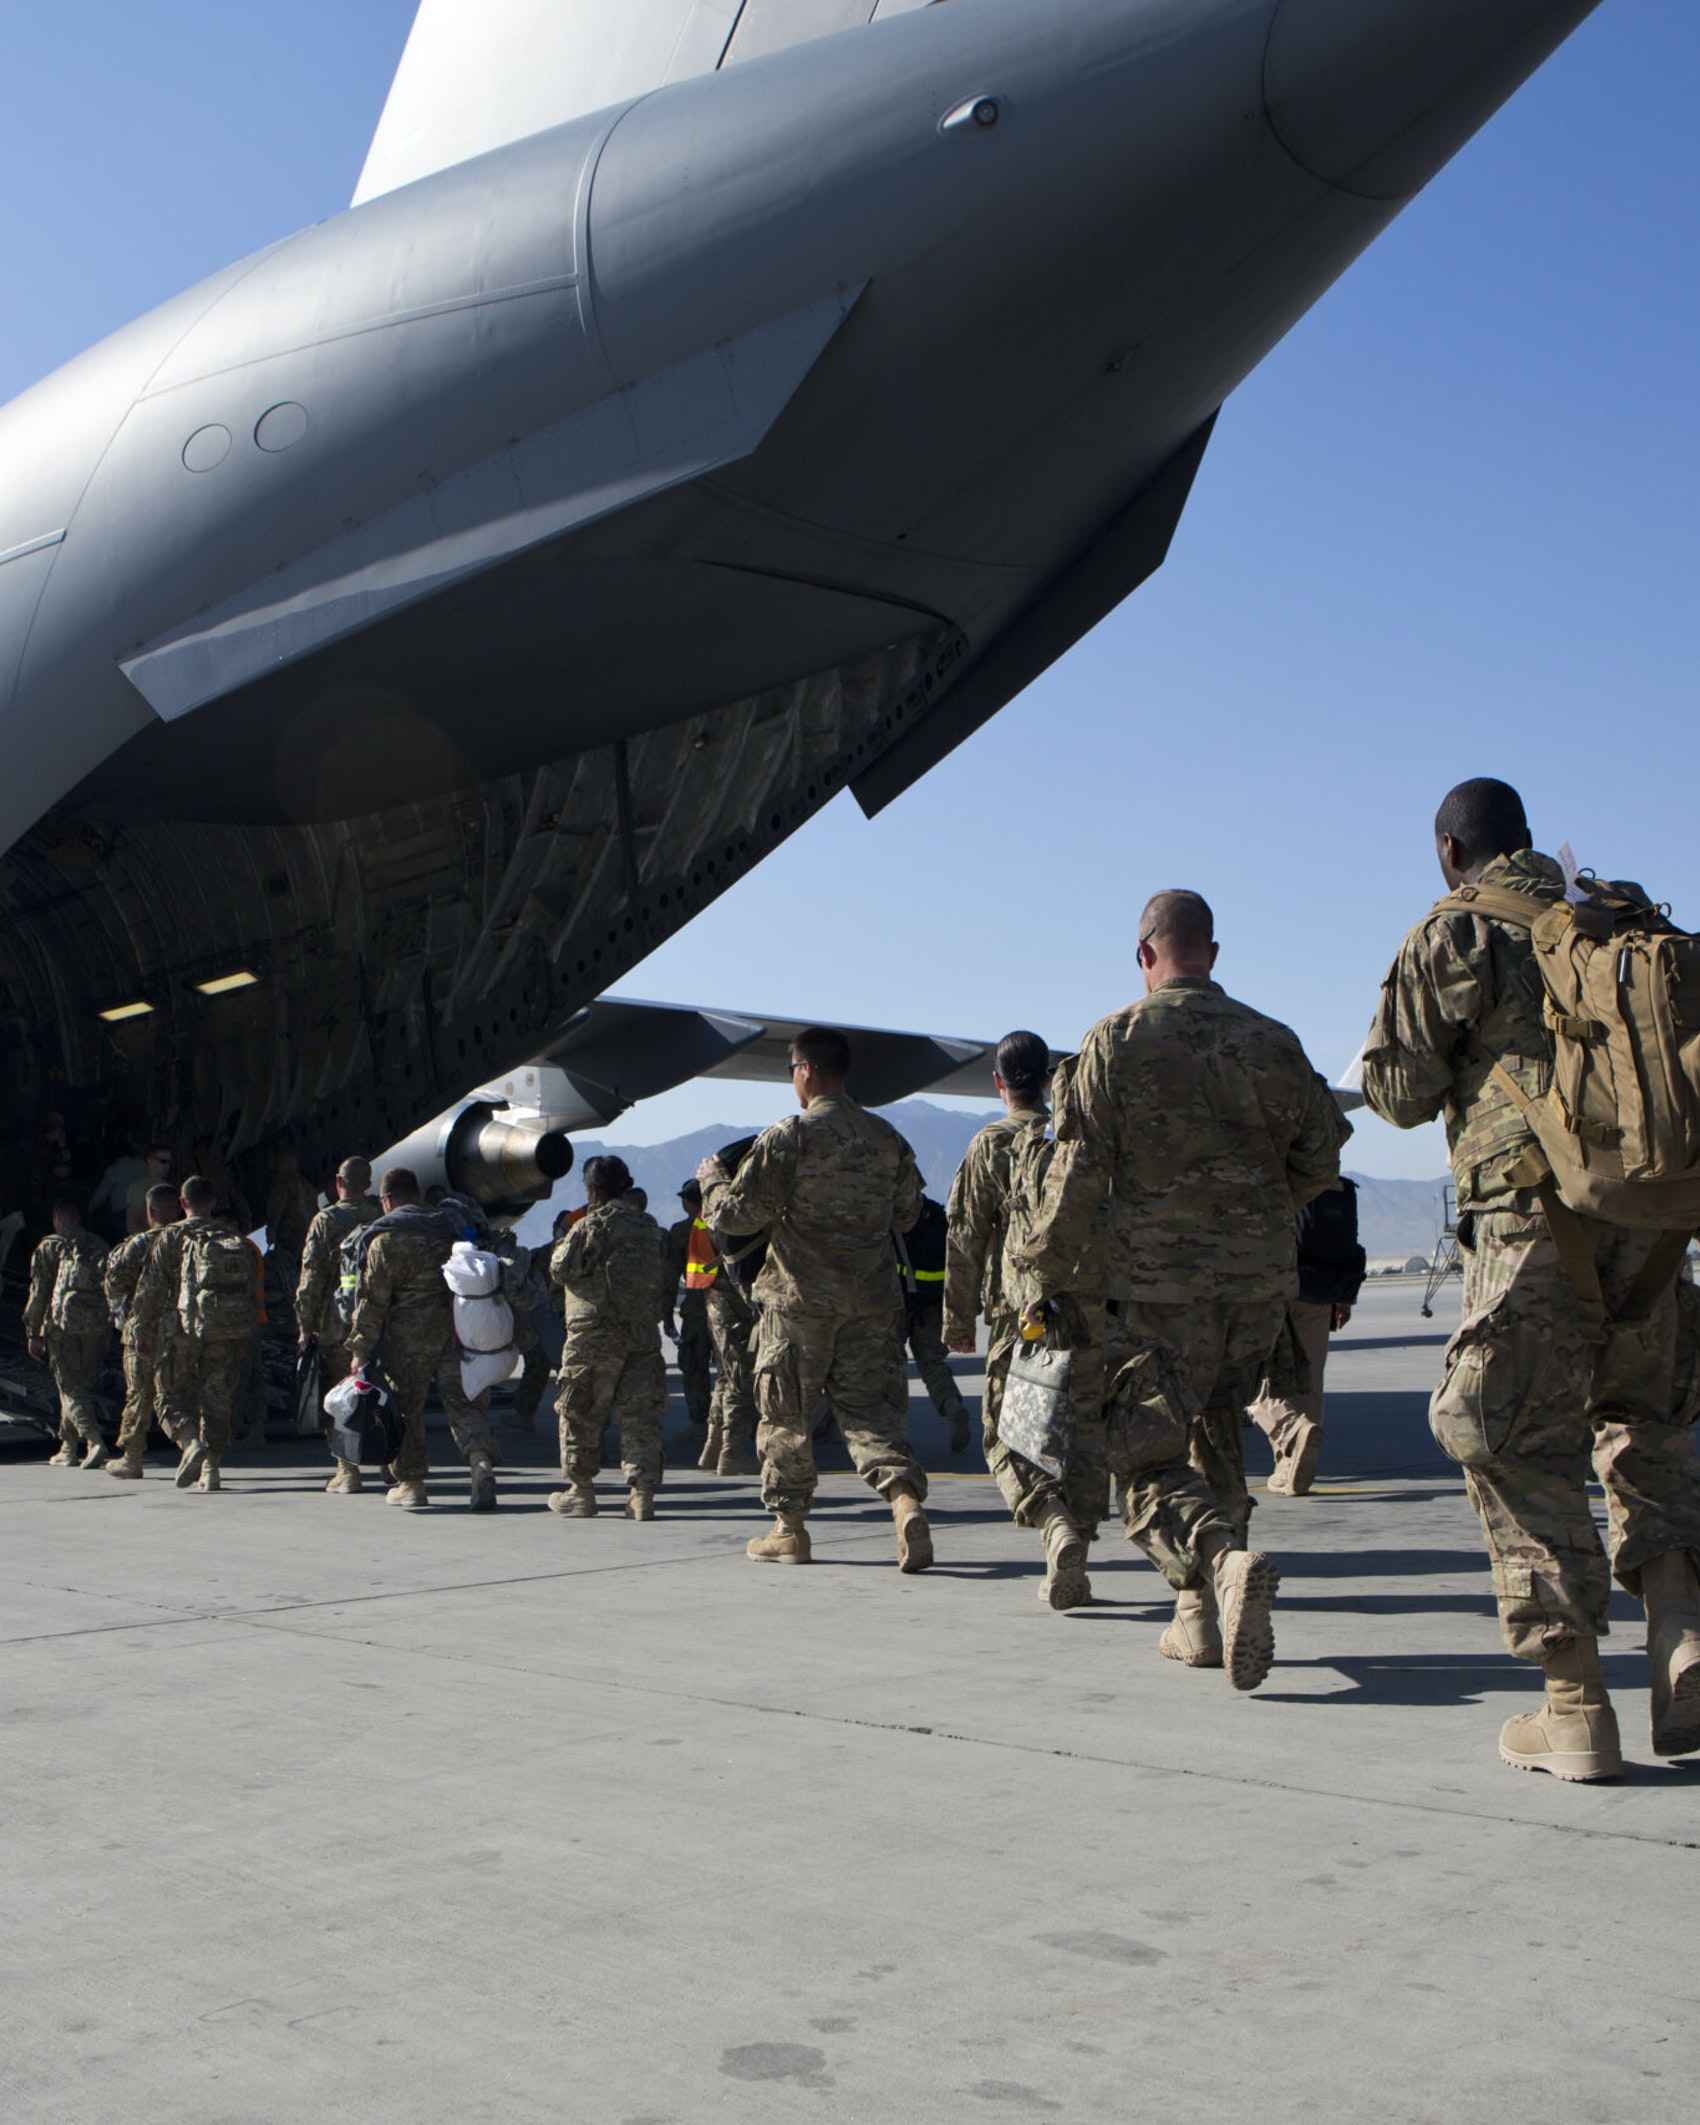 BAGRAM AIR BASE, AFGHANISTAN - MAY 11: U.S. Army soldiers walk to their C-17 cargo plane for departure May 11, 2013 at Bagram Air Base, Afghanistan. U.S. soldiers and marines are part of the NATO troop withdrawal from Afghanistan, to be completed by the end of 2014. (Photo by Robert Nickelsberg/Getty Images)